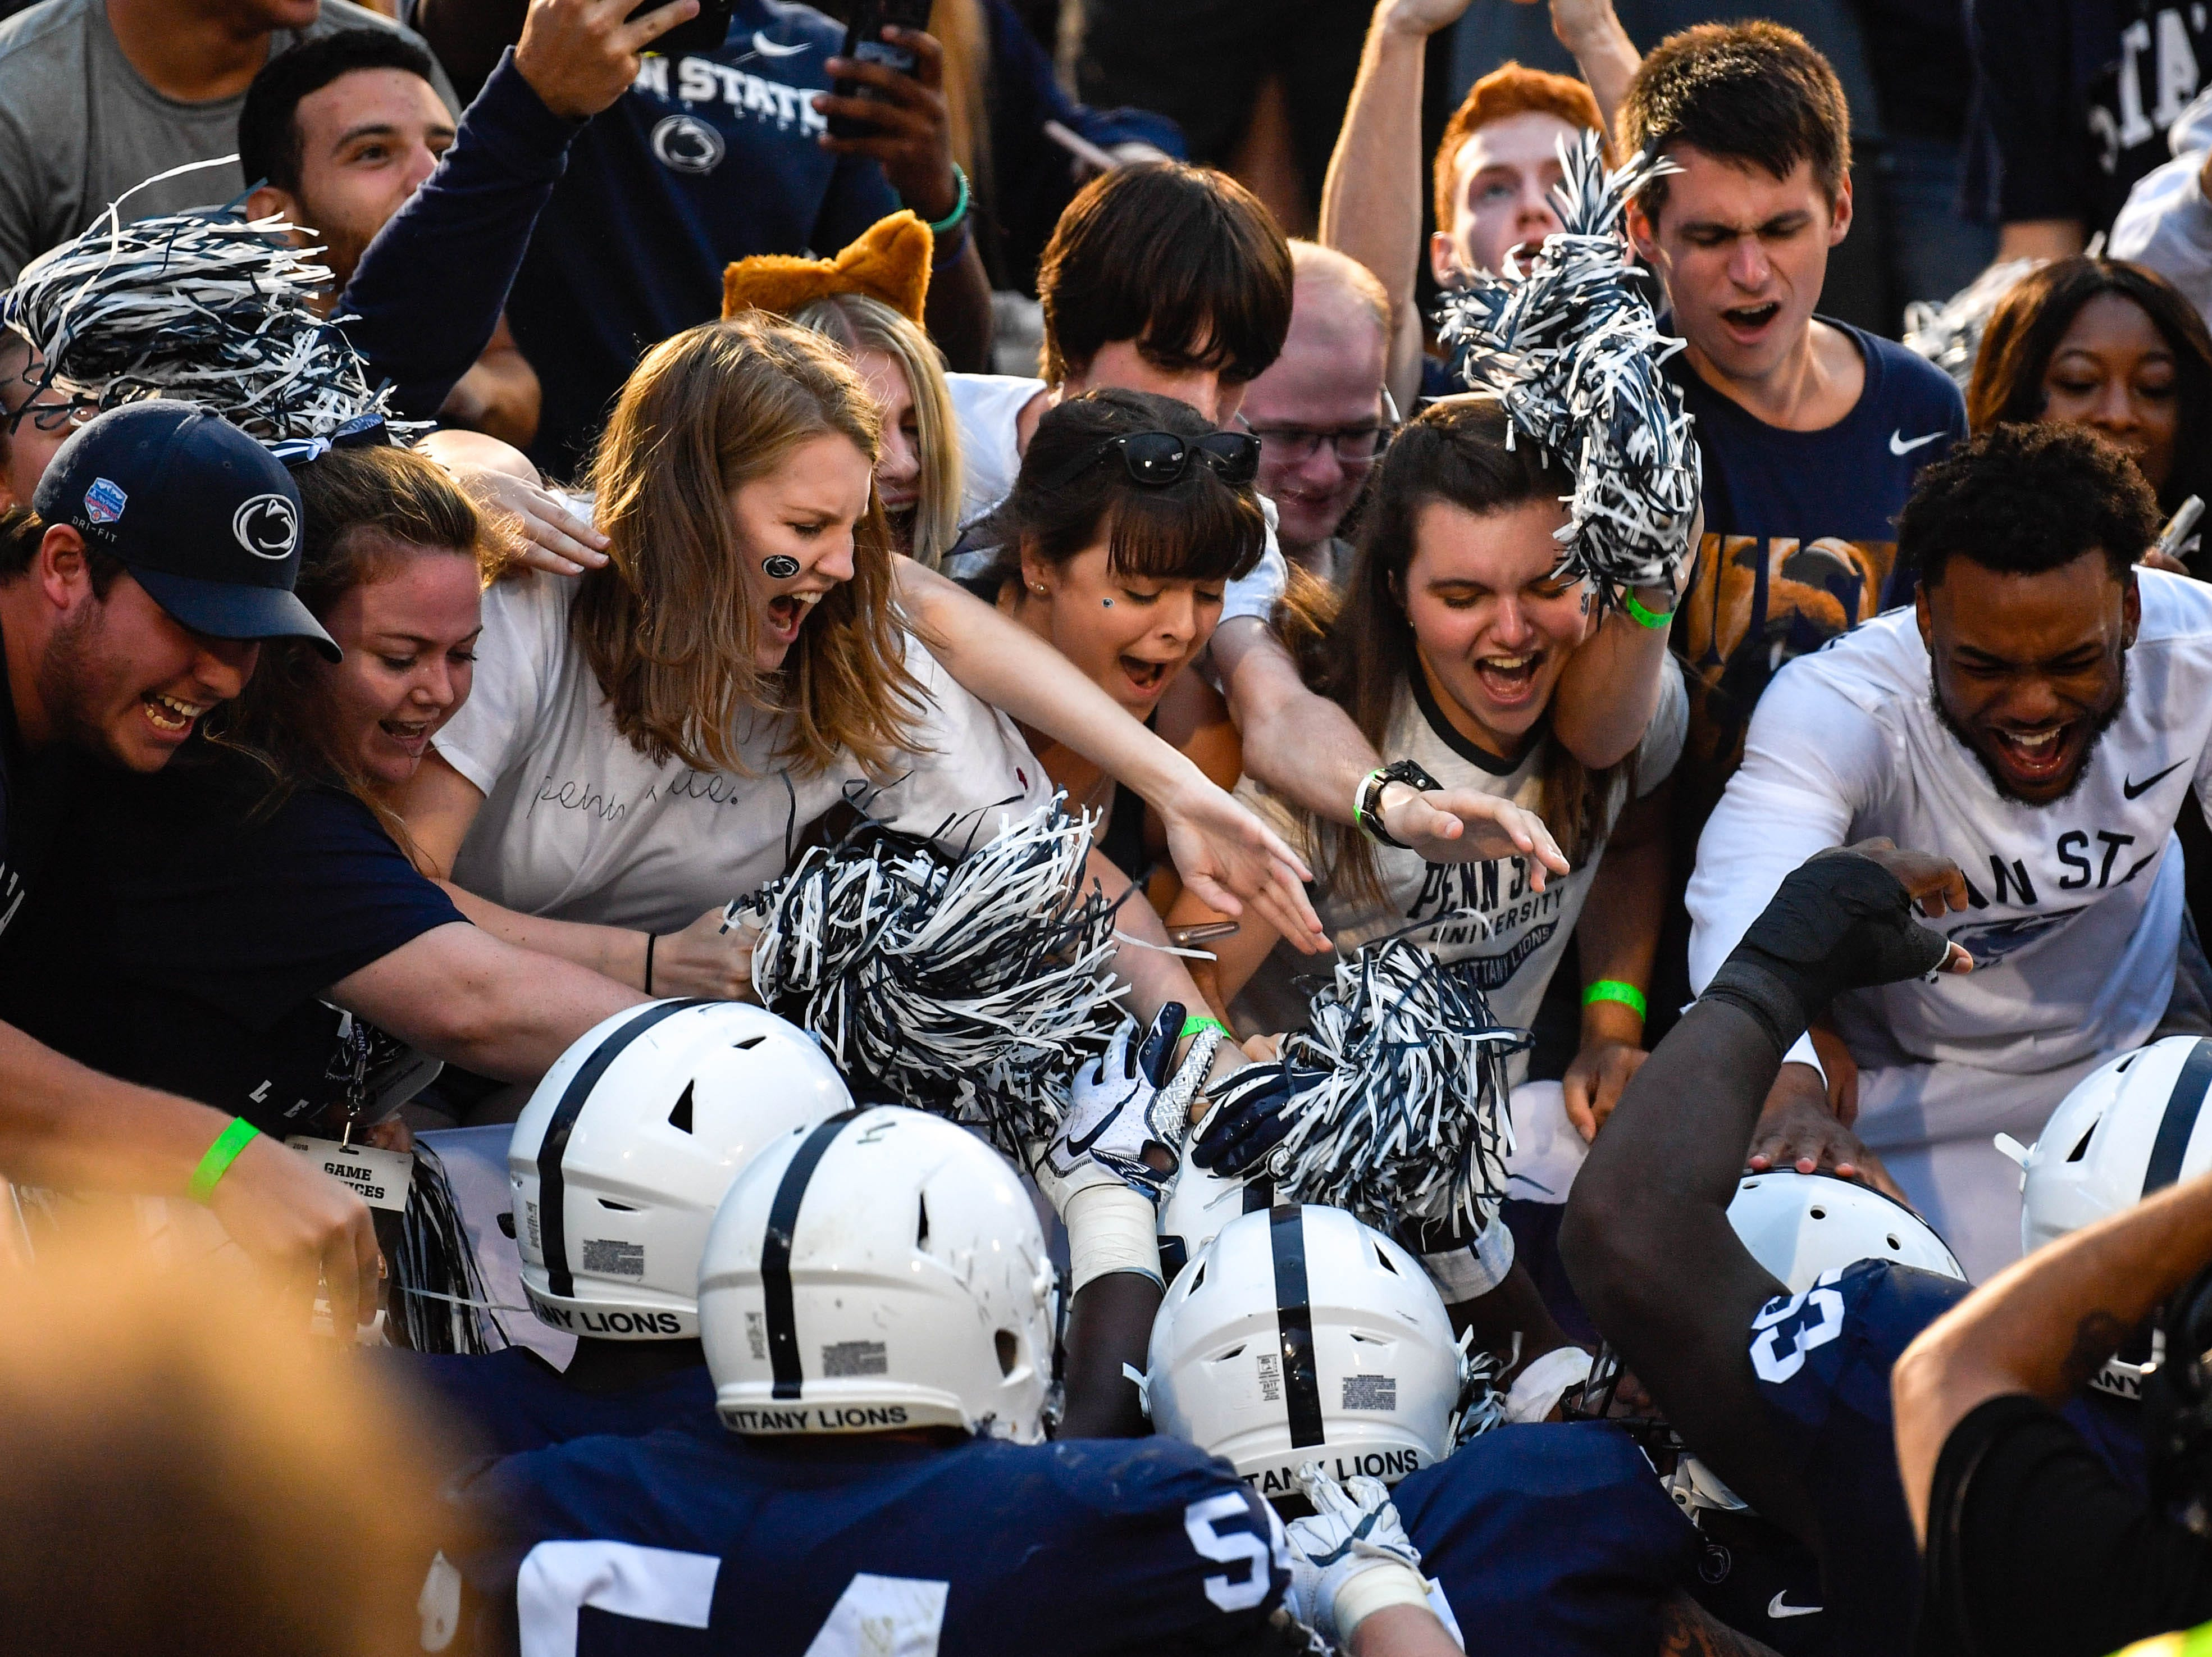 Penn State players celebrate the overtime win with their fans after defeating Appalachian State in a nail biter.